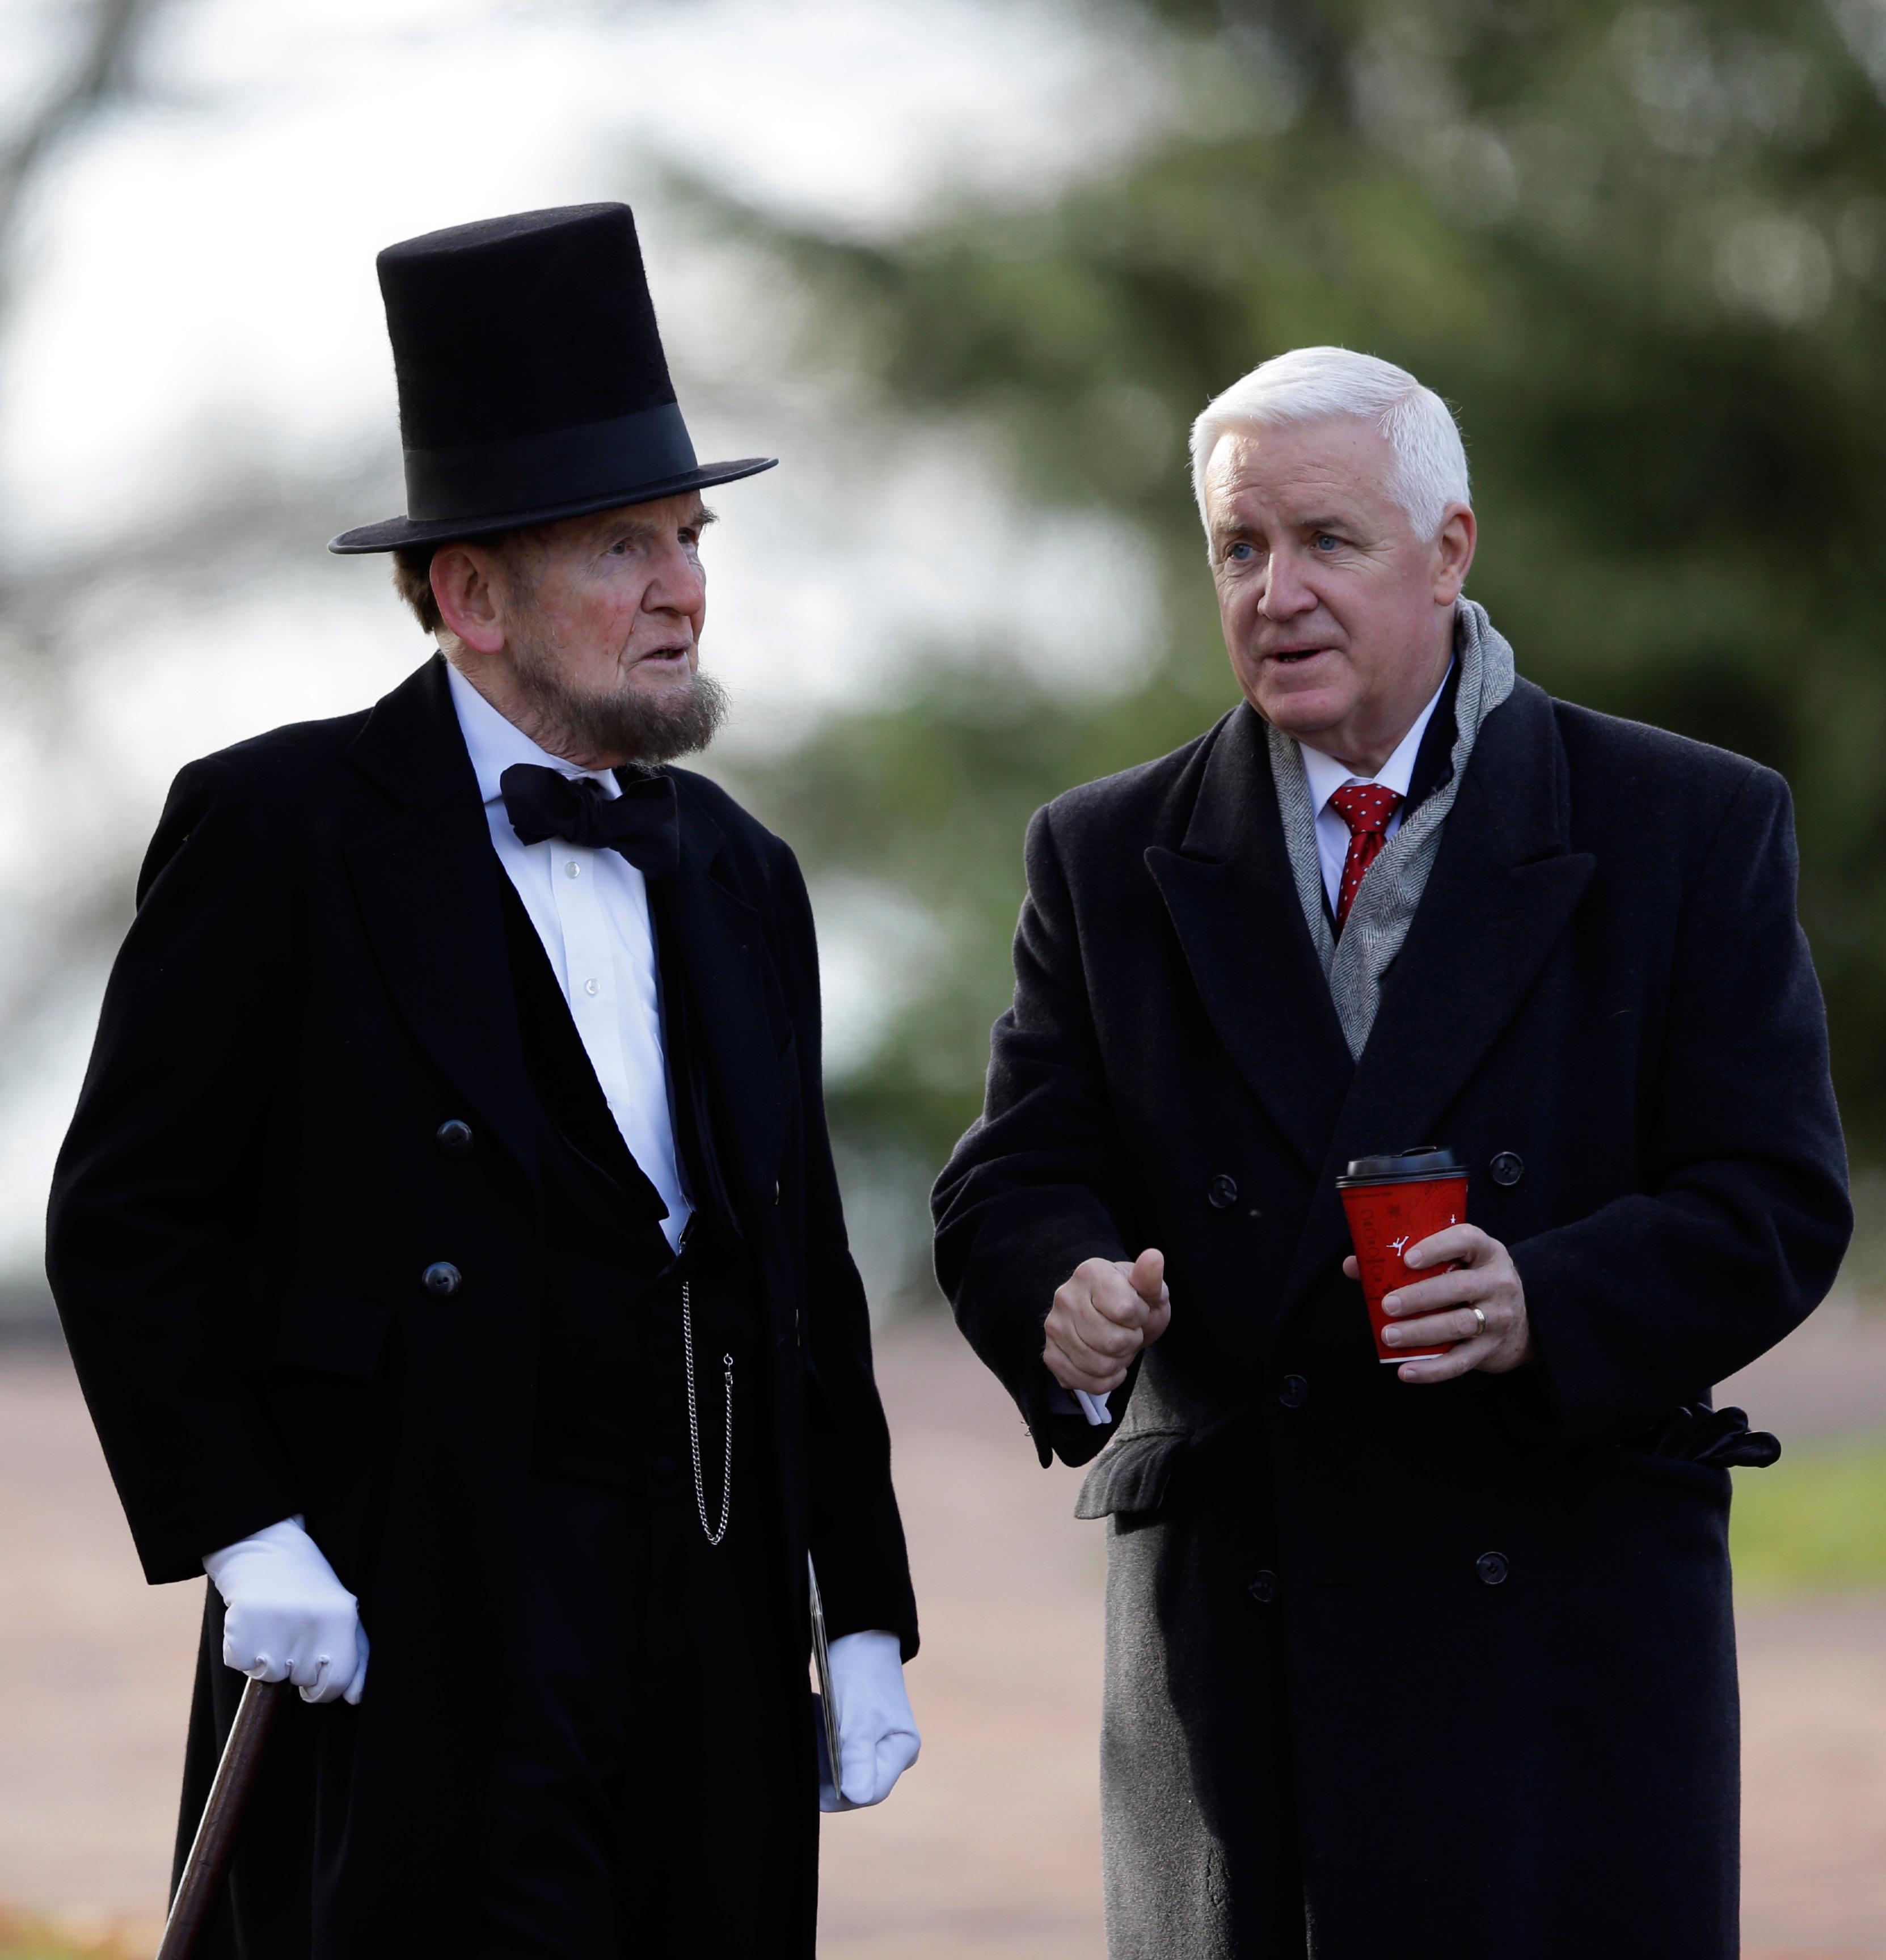 Pennsylvania Gov. Tom Corbett, right, speaks with James Getty, portraying President Abraham Lincoln, before a ceremony commemorating the 150th anniversary of the dedication of the Soldiers National Cemetery and President Abraham Lincoln